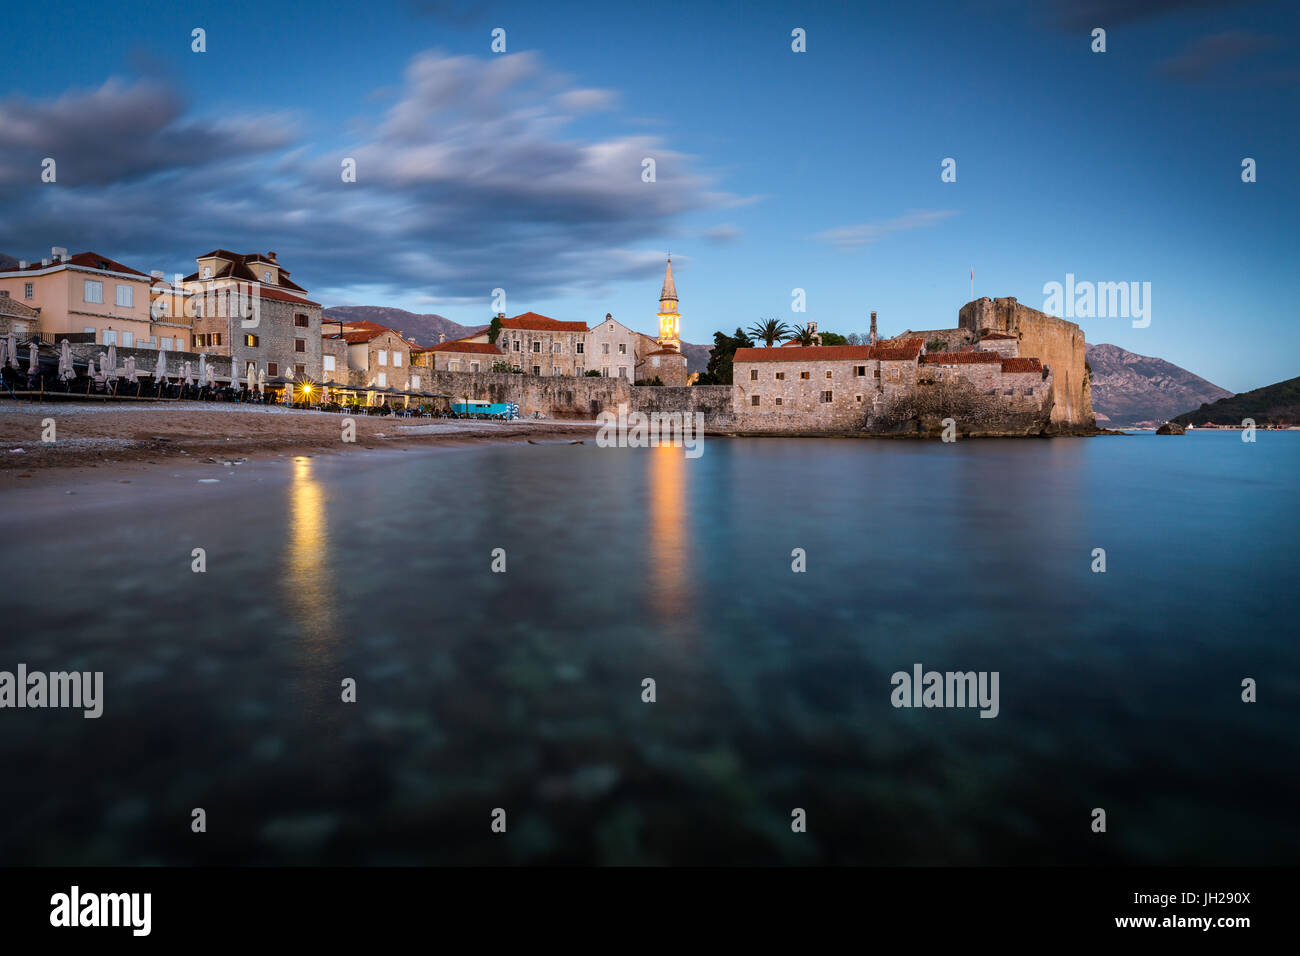 A long exposure during the evening blue hour of the beach and stari grad (old town) of Budva, Montenegro, Europe - Stock Image